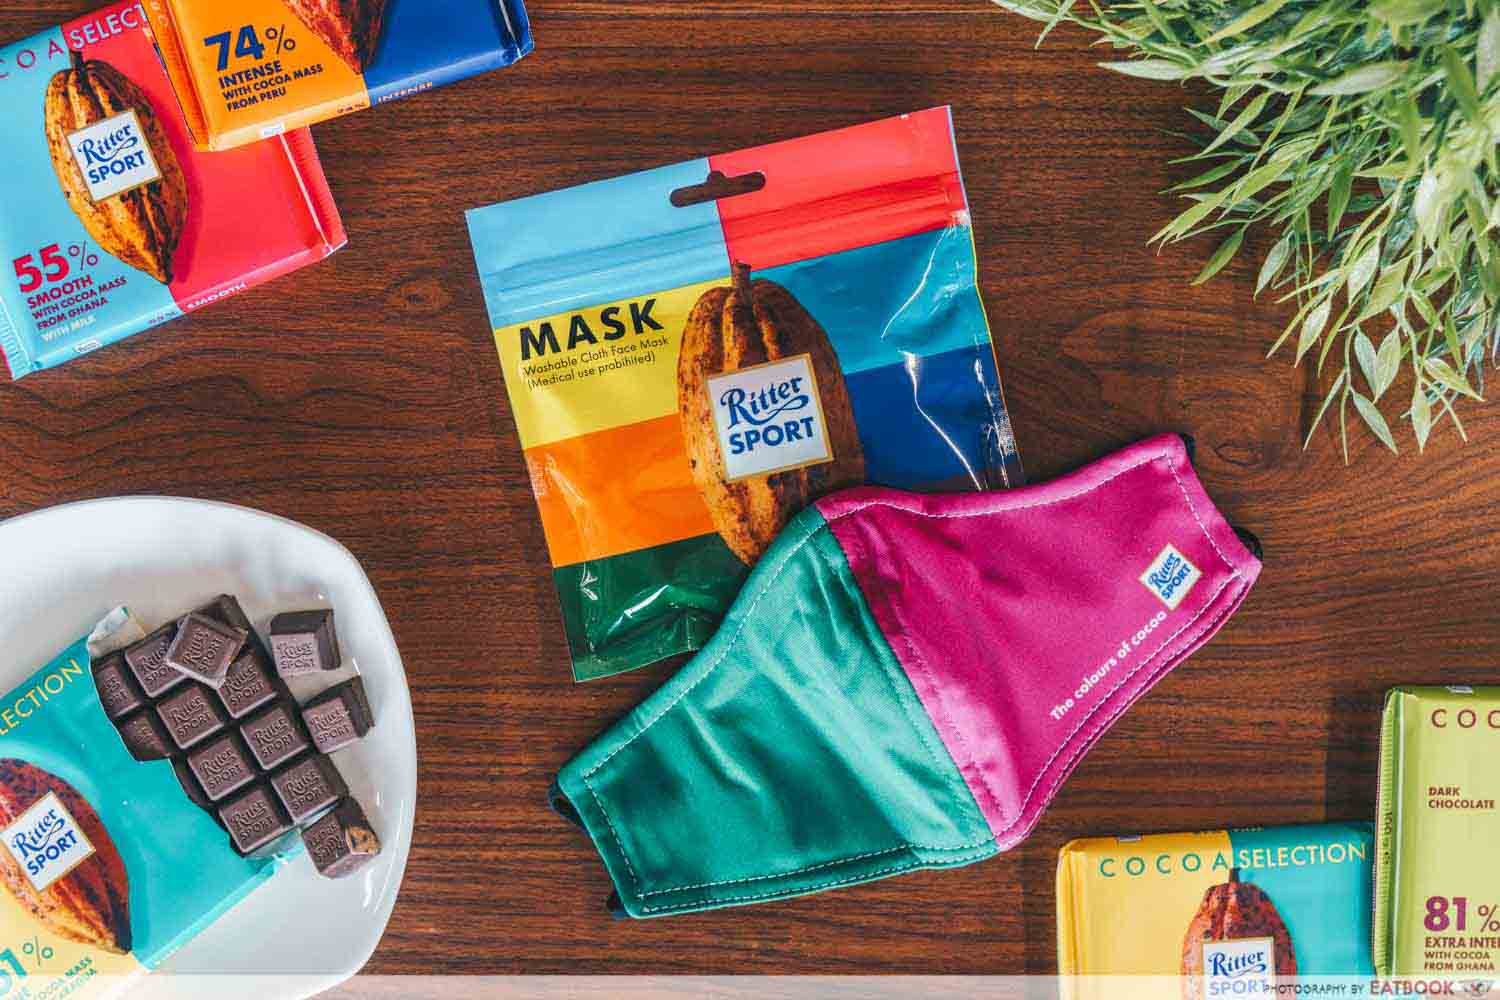 Ritter Sport - two tone mask